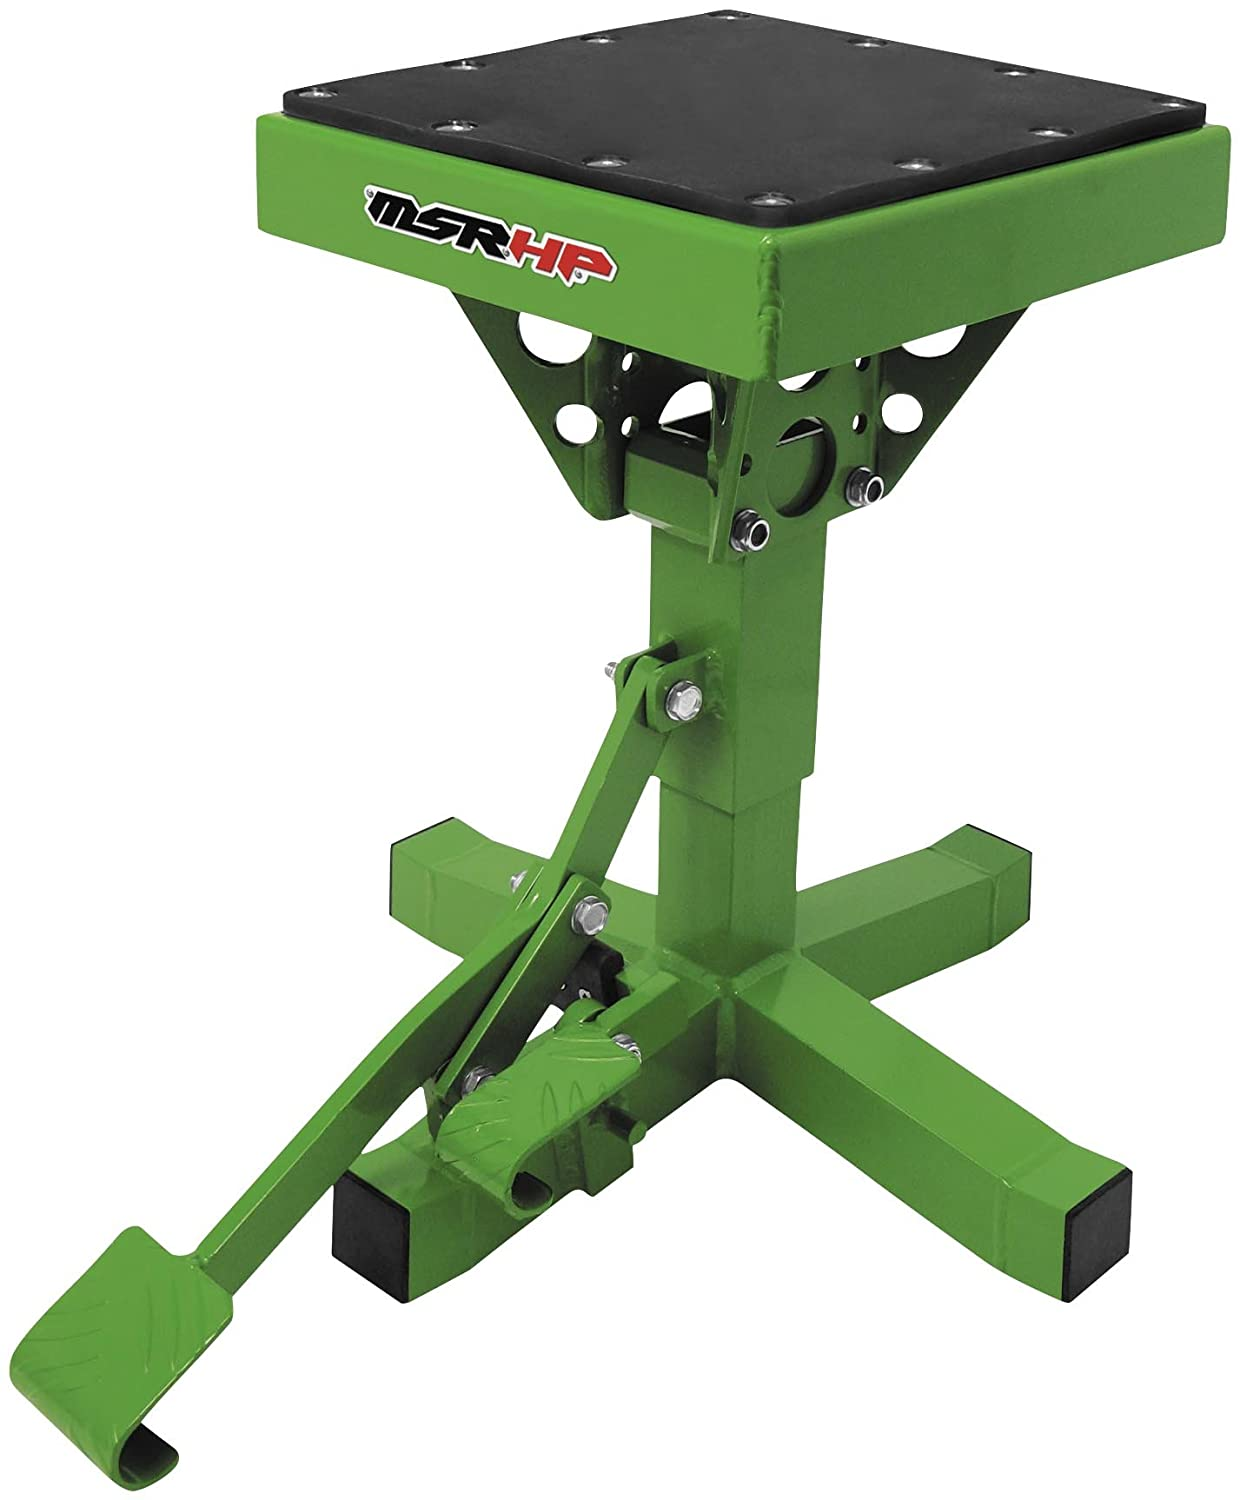 MSR MSRHP Adjustable Pro Lift Stand Aluminum Green LEPAZA5989